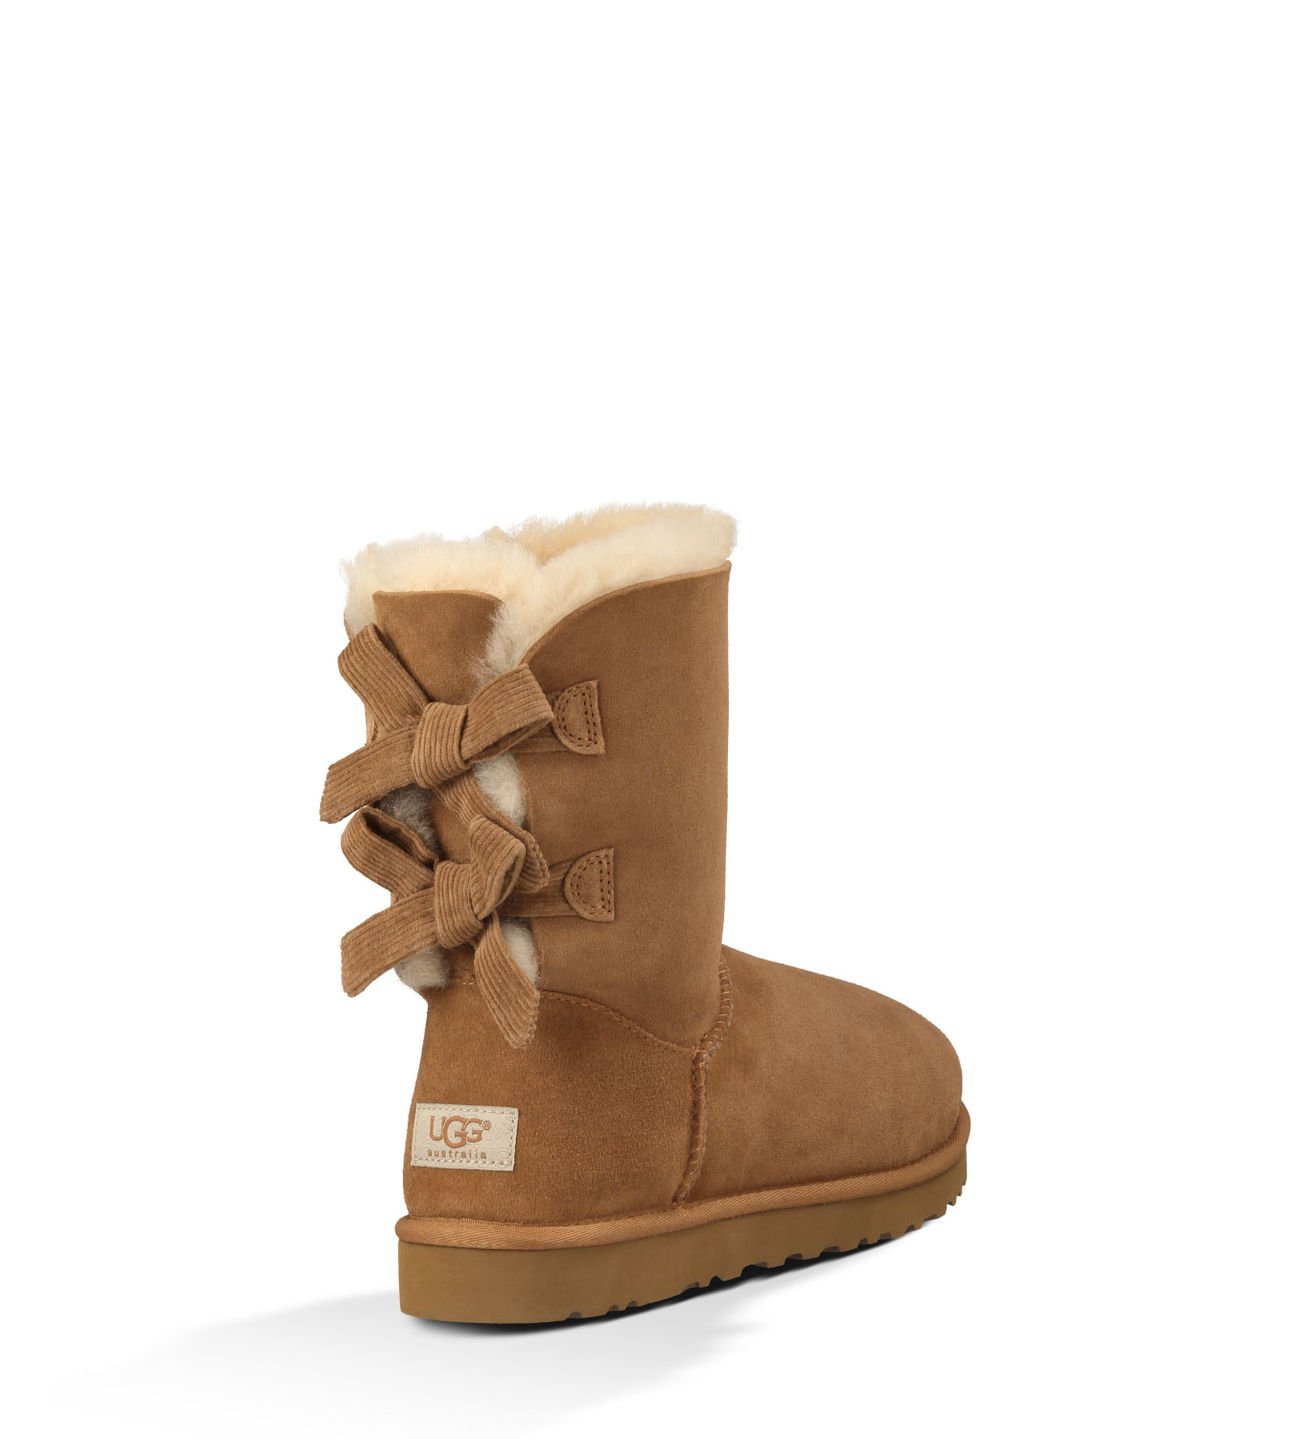 Cheap Womens Boots Online 2npw9oFe